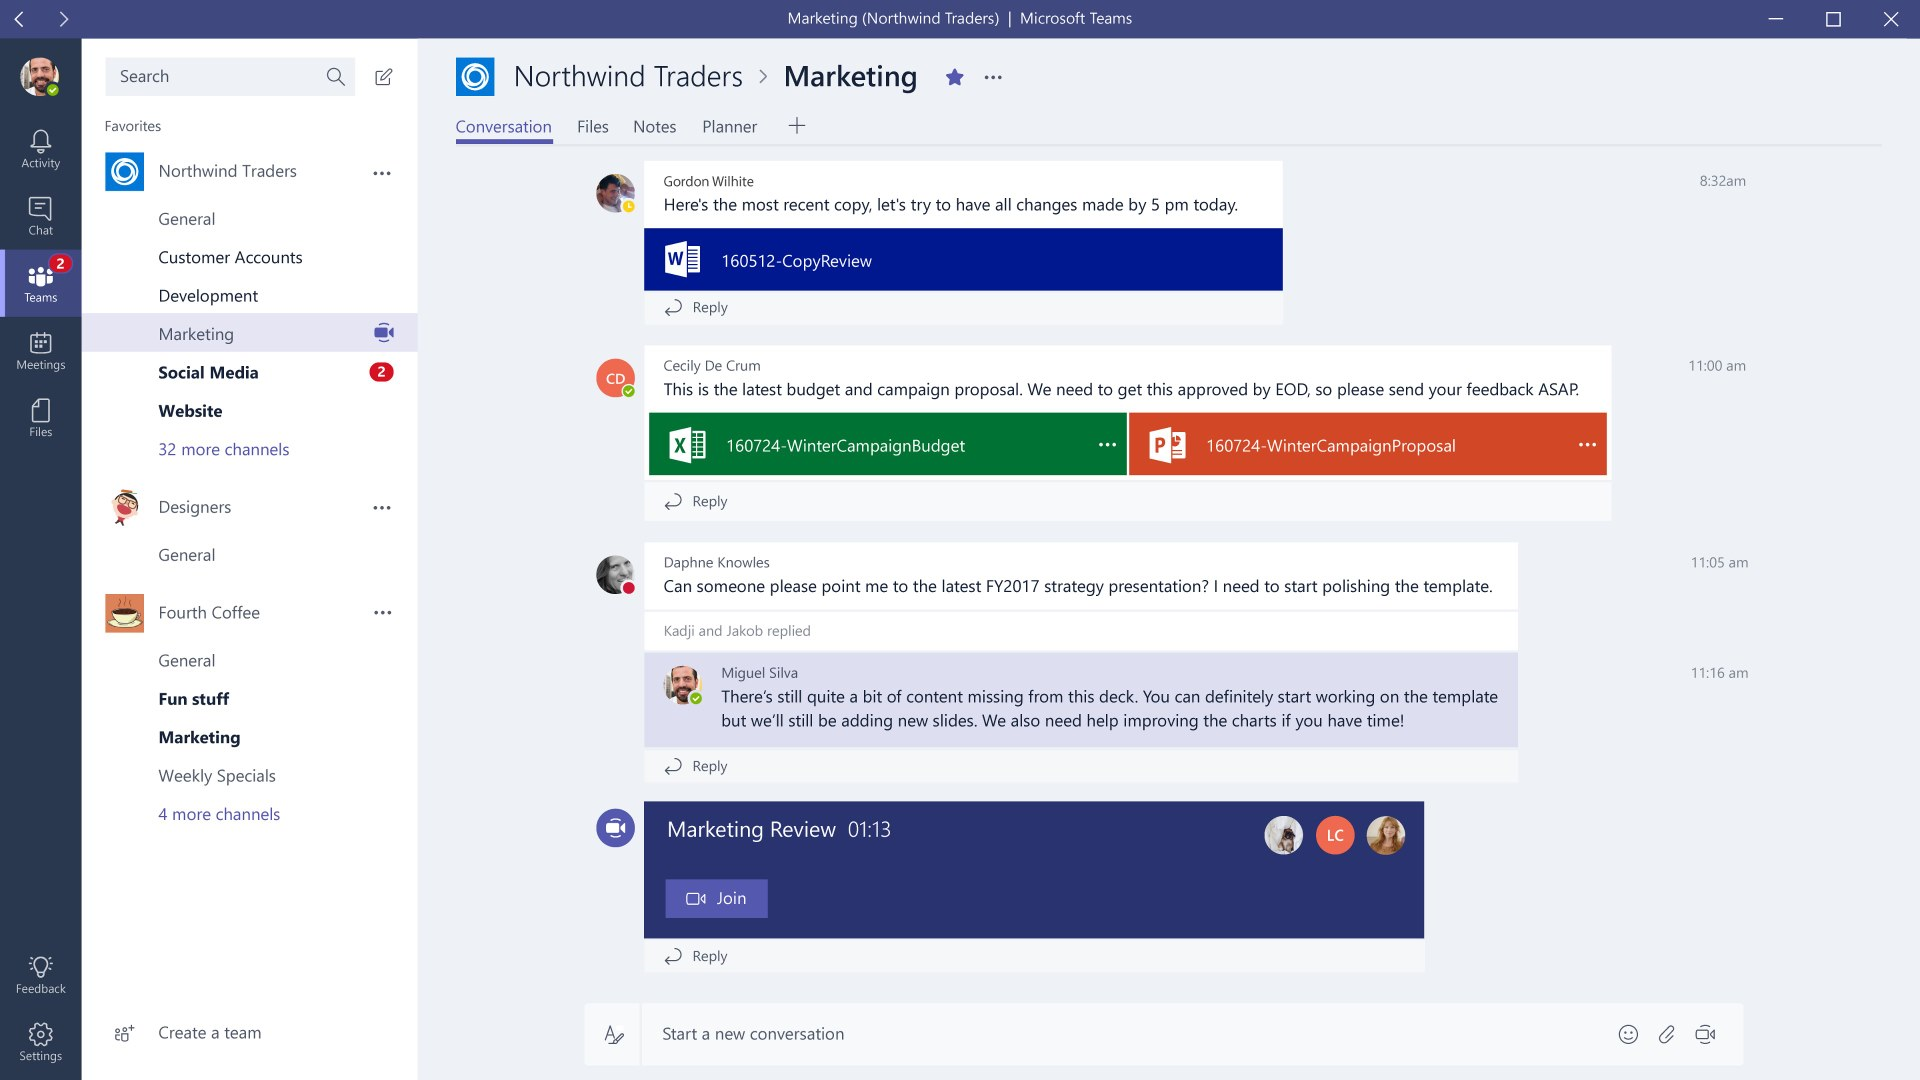 Microsoft Teams Redmond Lanciert Slack Konkurrenten